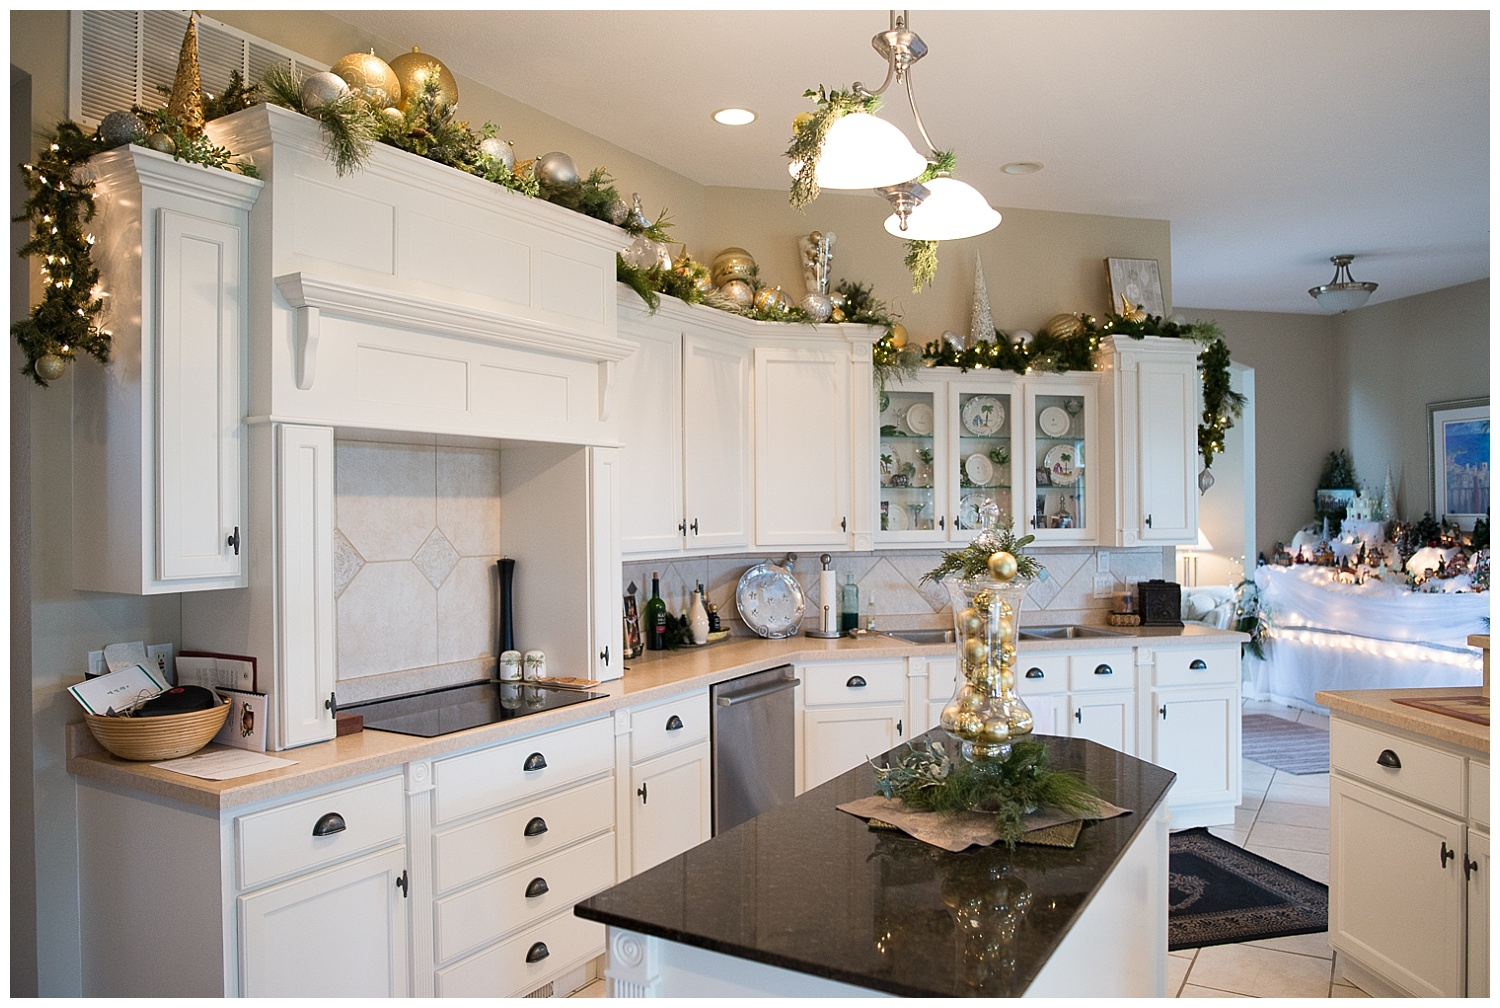 And garland.  Something as simple as garland with lights and ornaments packs quite a punch.  She changes out the layout above the cabinets in her kitchen four times a year.  When it's not Christmas, Easter or Halloween palm trees reside in this space.